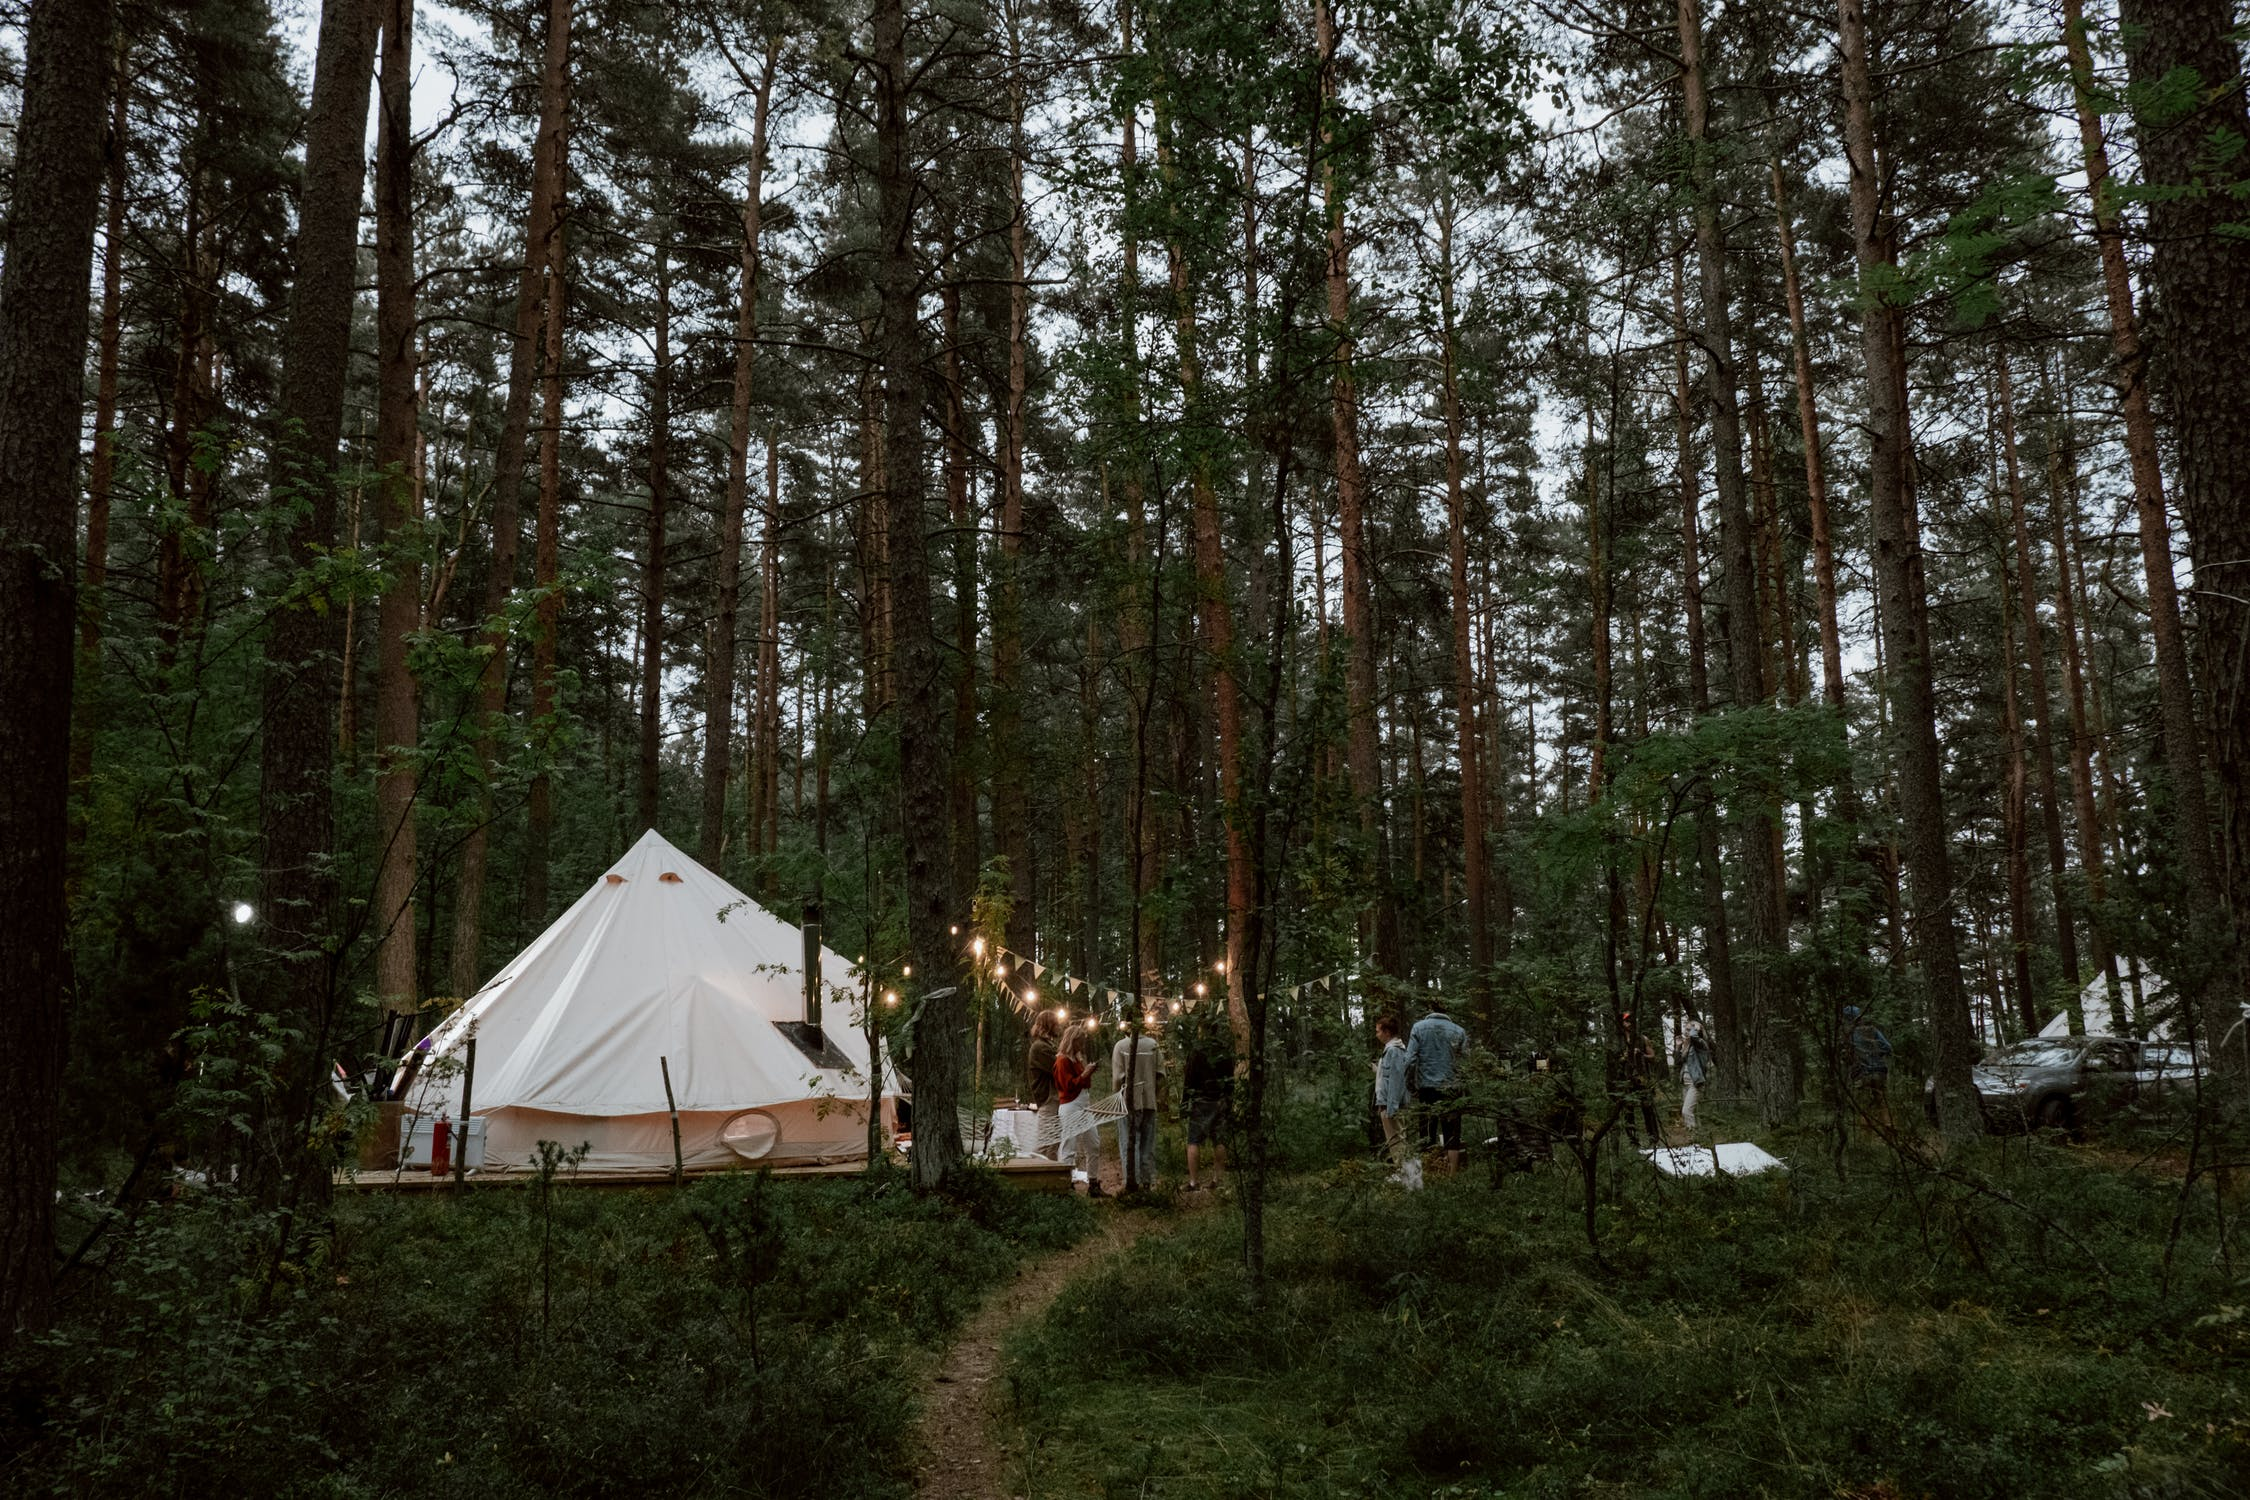 Glamping tent in the forest.